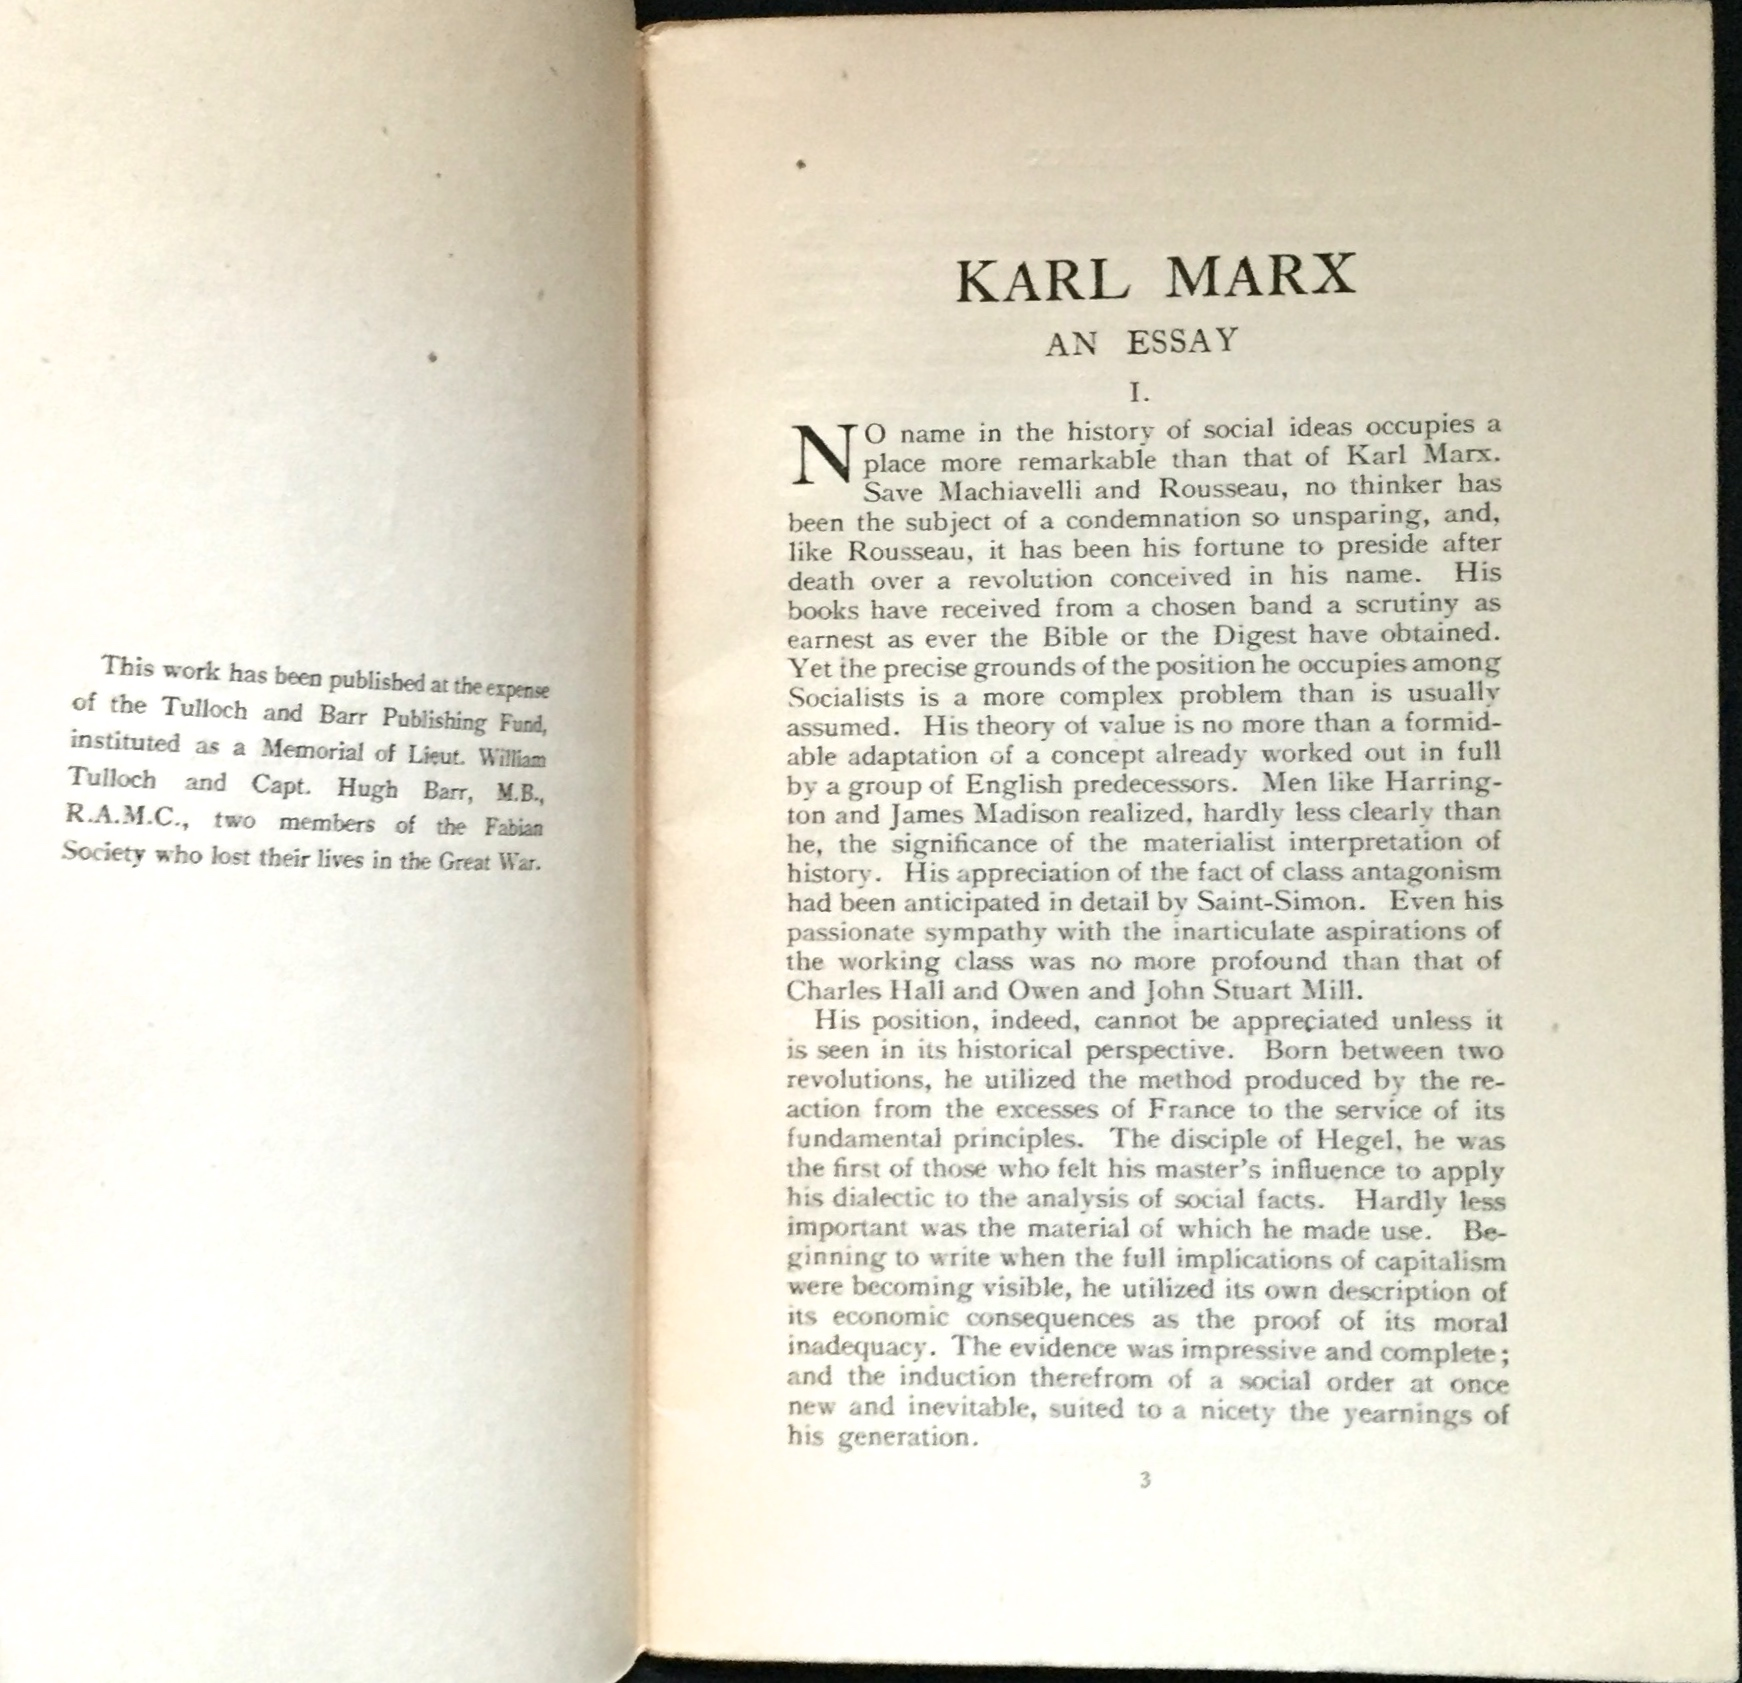 karl marx essays india Karl marx karl marx is often called the father of communism, but his life entailed so much more he was a political economist, philosopher, and idea revolutionist he was a scholar that believed that capitalism was going to undercut itself as he stated in the communist manifesto.